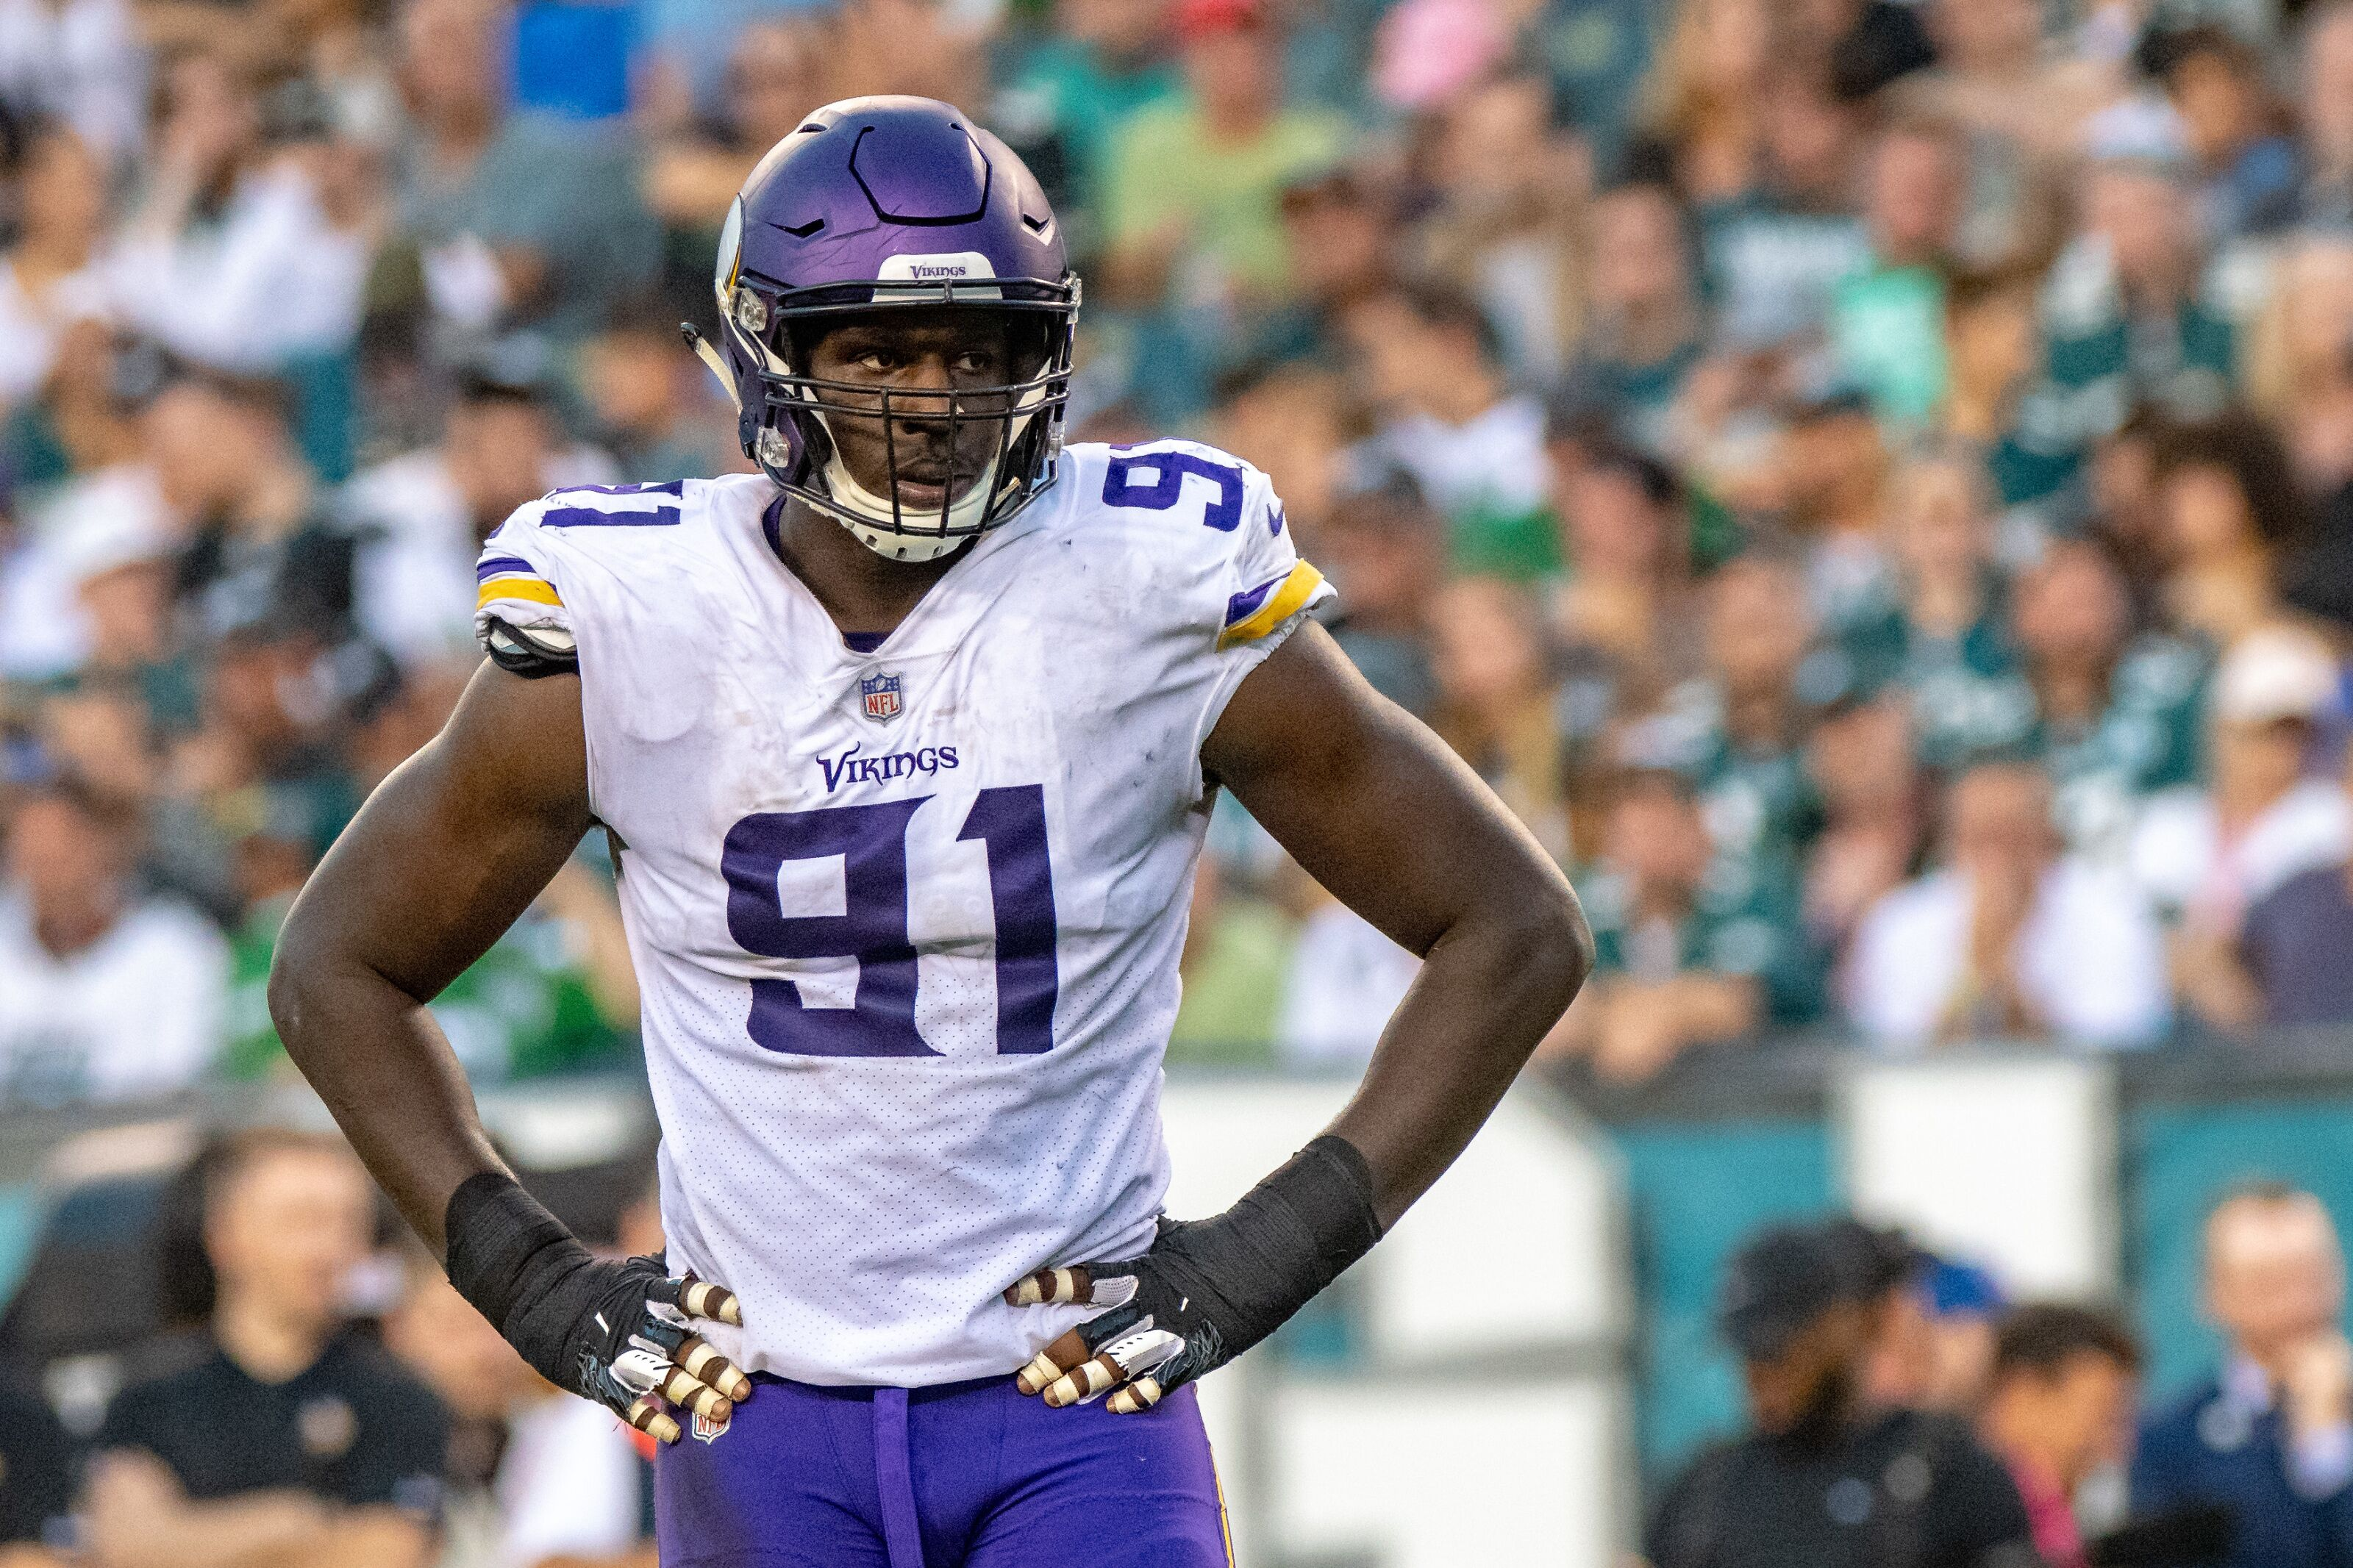 Minnesota Vikings defensive end baffled by his Madden NFL 20 rating